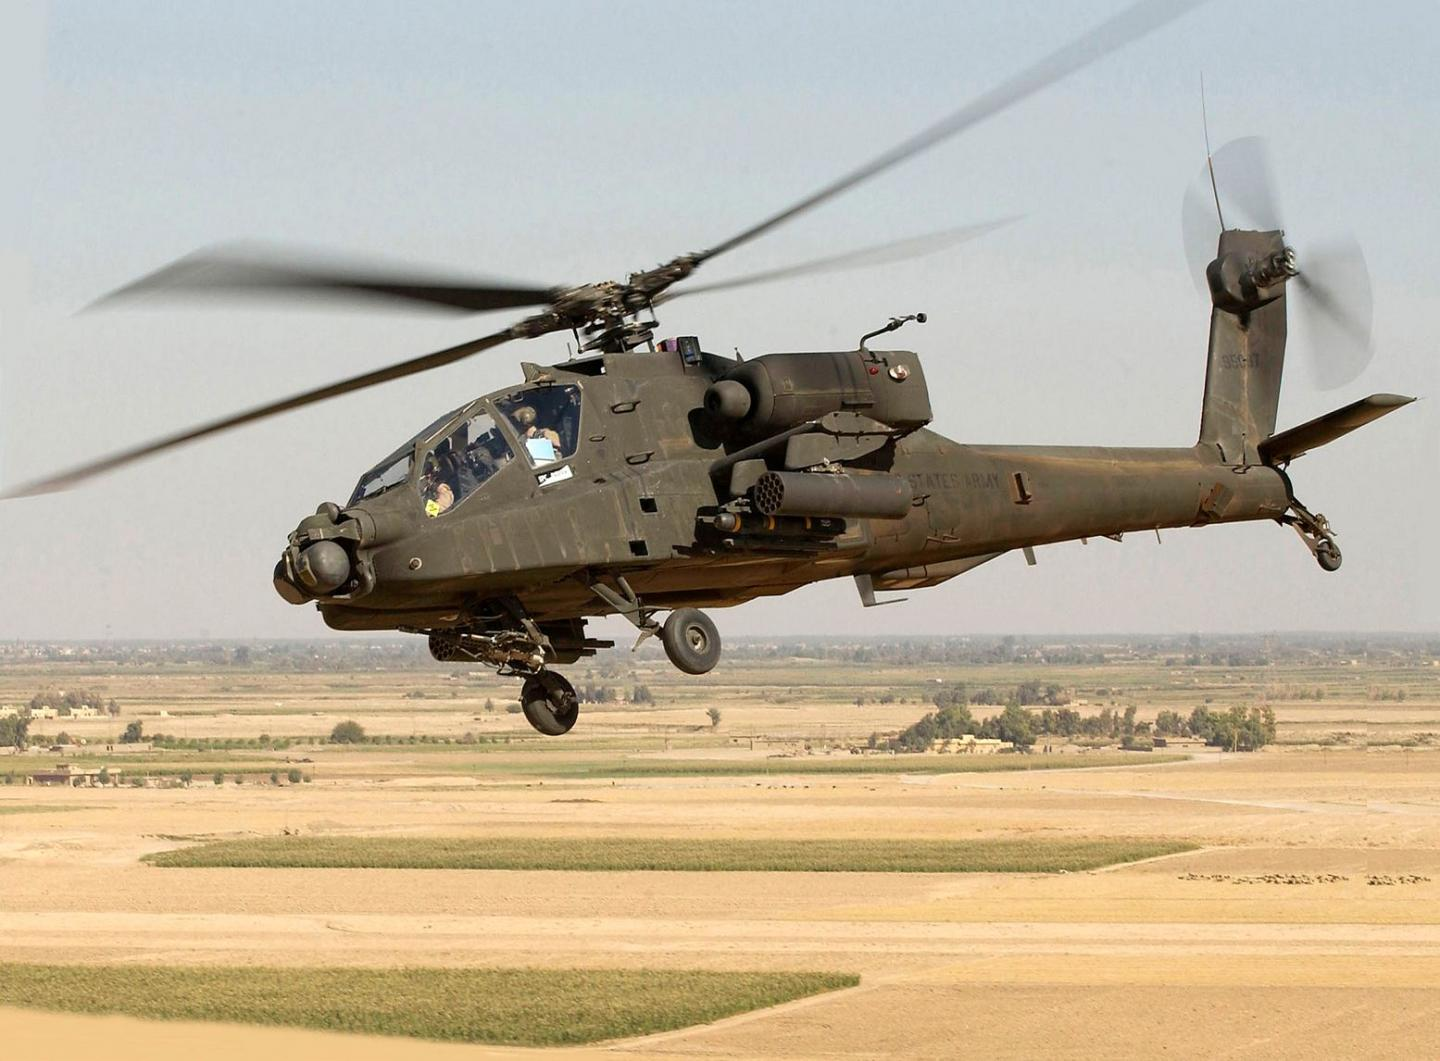 Its a Deal: Army Wants Boeing to Build or Fix 600 AH-64E Apaches